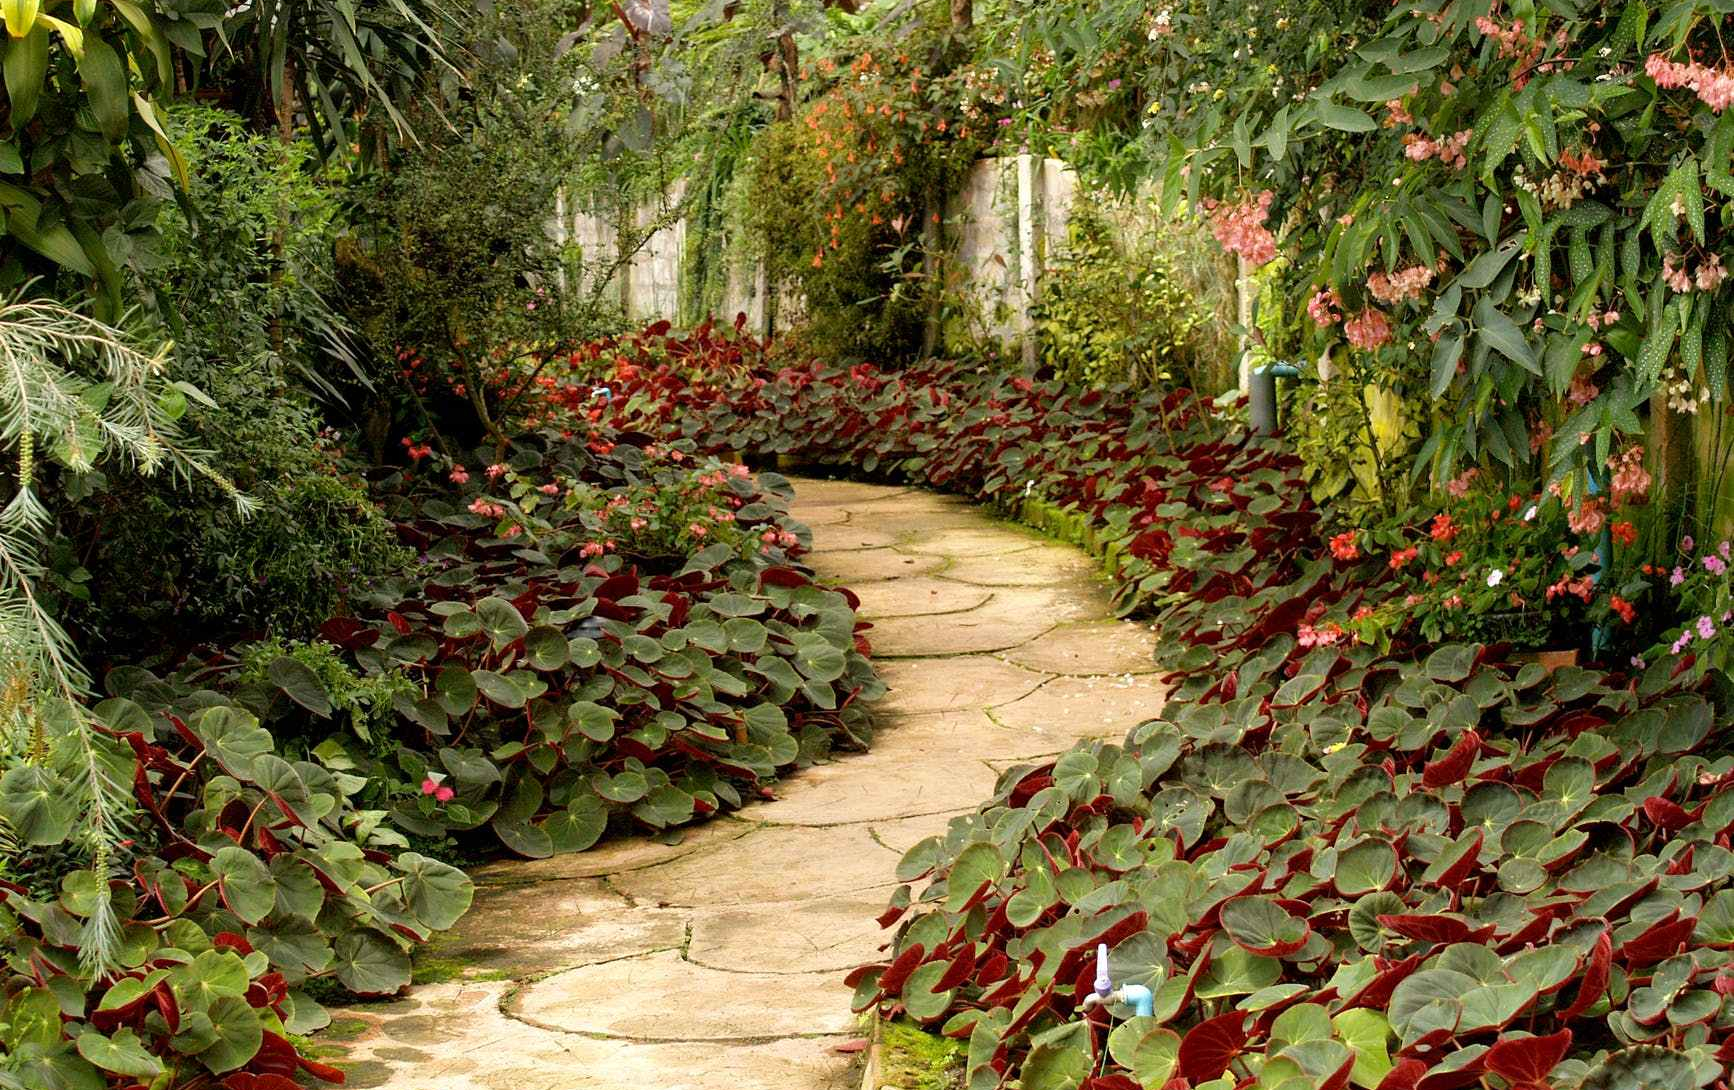 A path through a garden